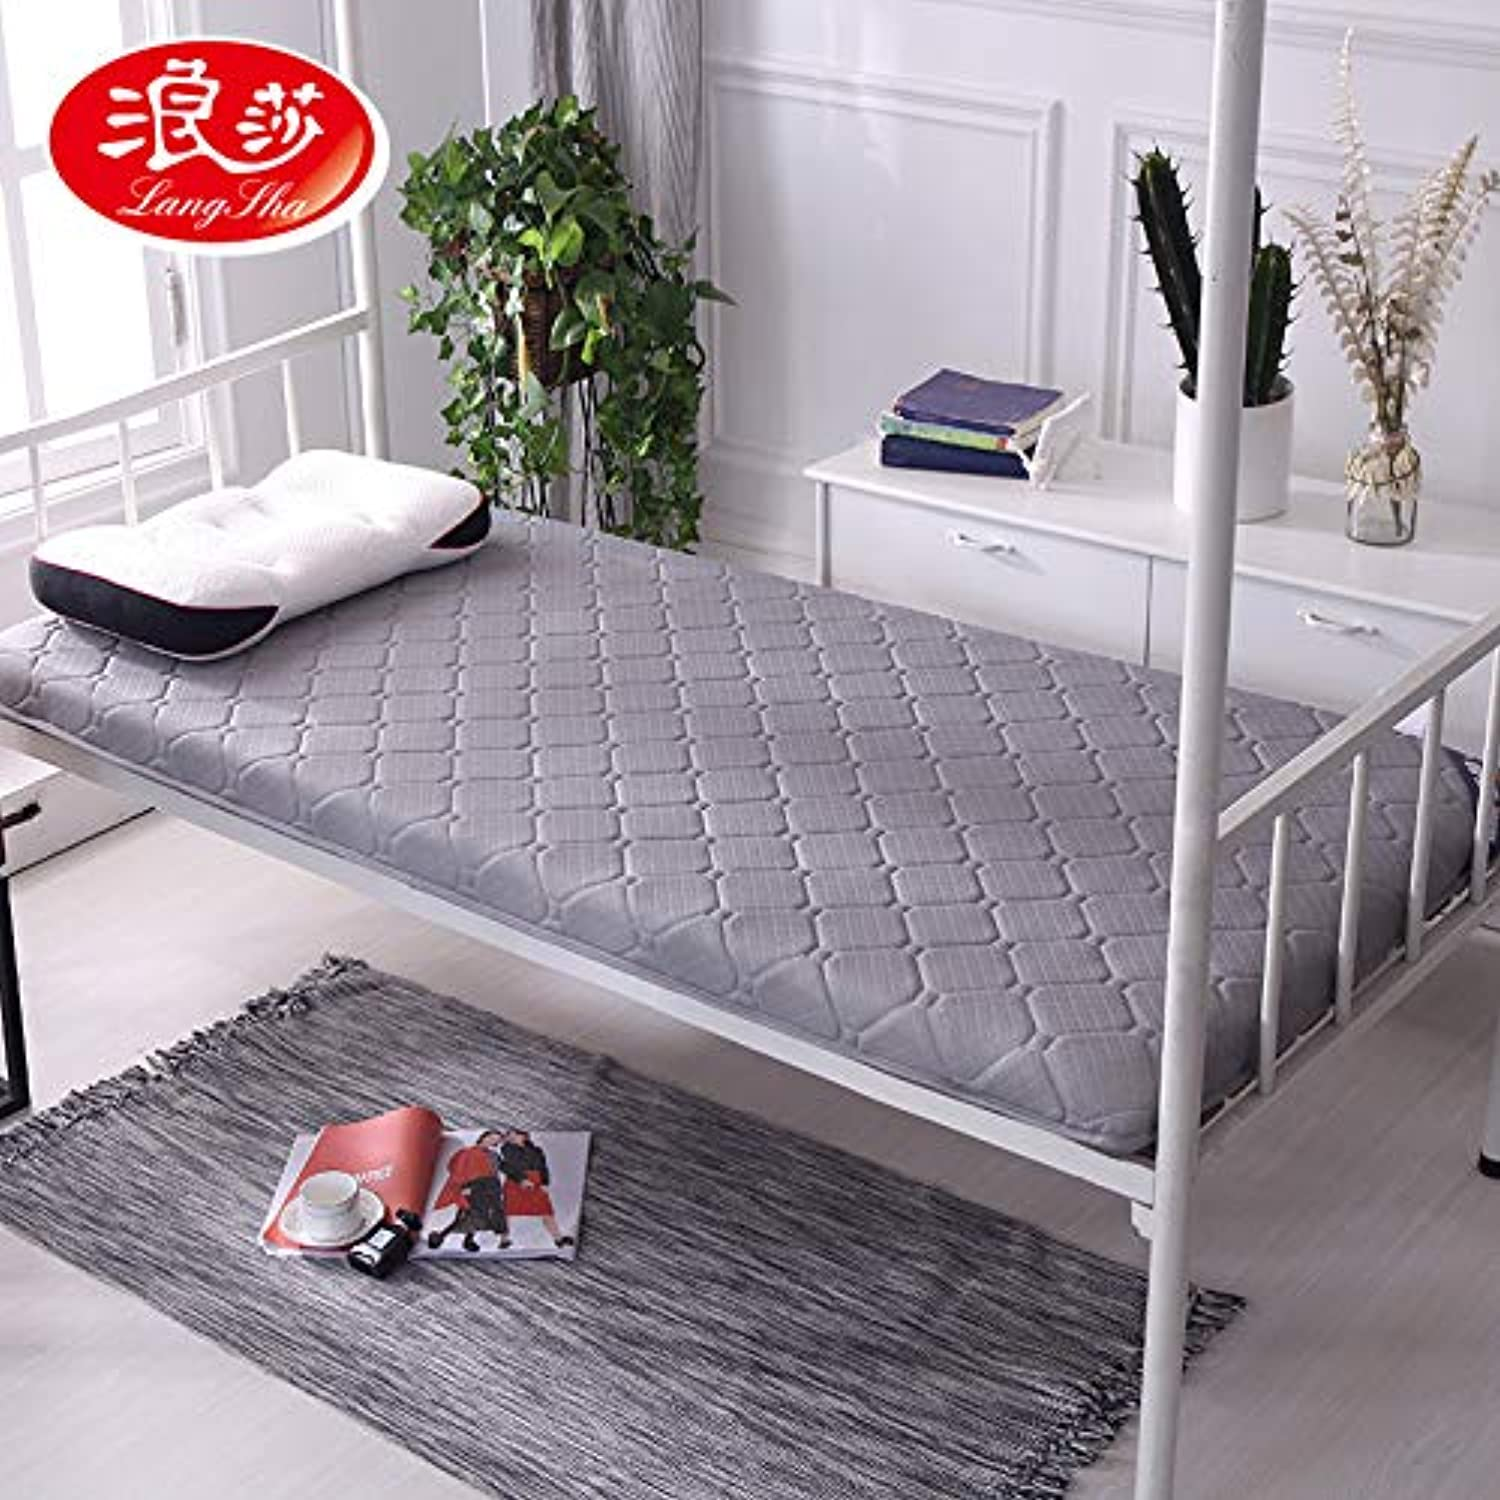 Lang Sha Jia Thick Mattress Dormitory 1.8m 1.5m 1.2 m Single Double Tatami Mattress Foldable